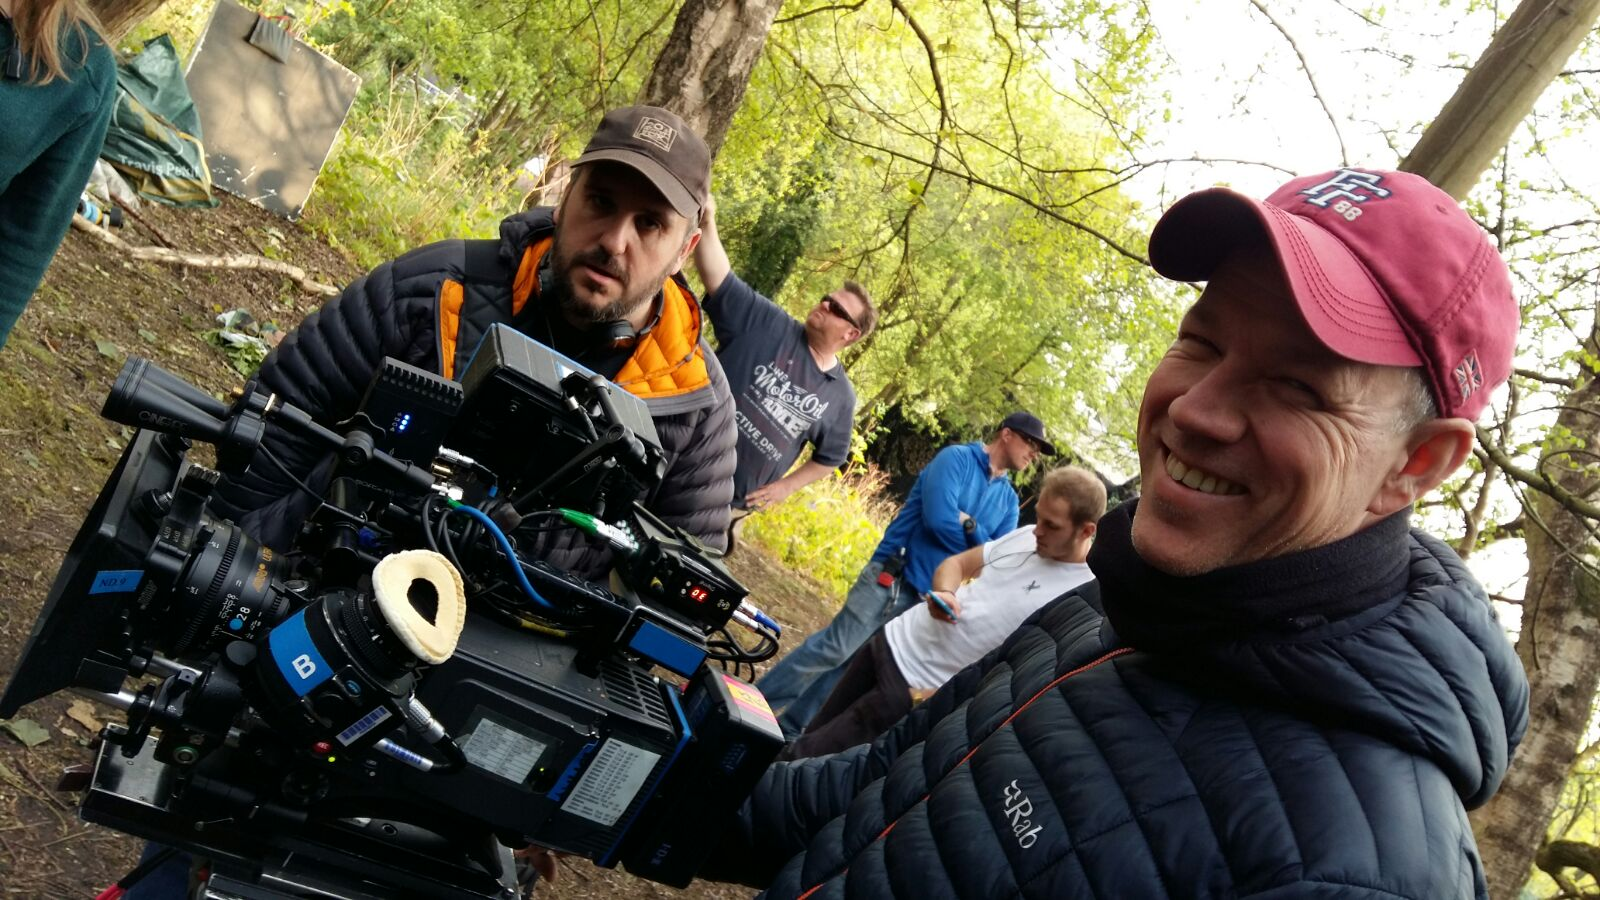 Andrew Johnson DOP with Director Steve Hughes on location shoot for BBC production Creeped Out